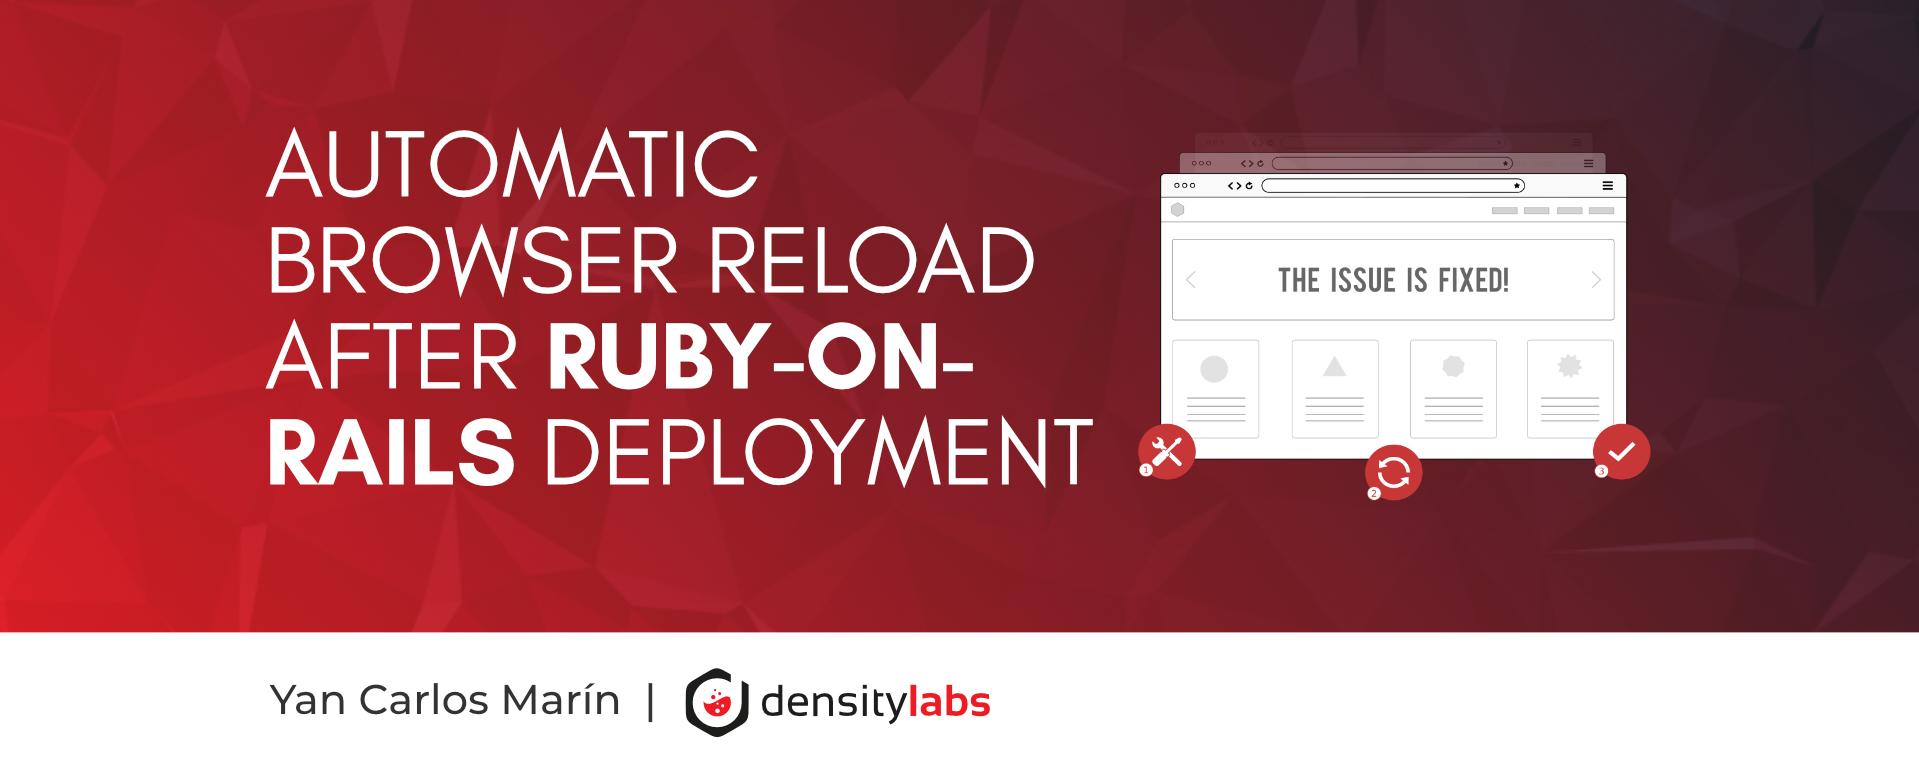 Automatic browser reload after Ruby-on-Rails deployment